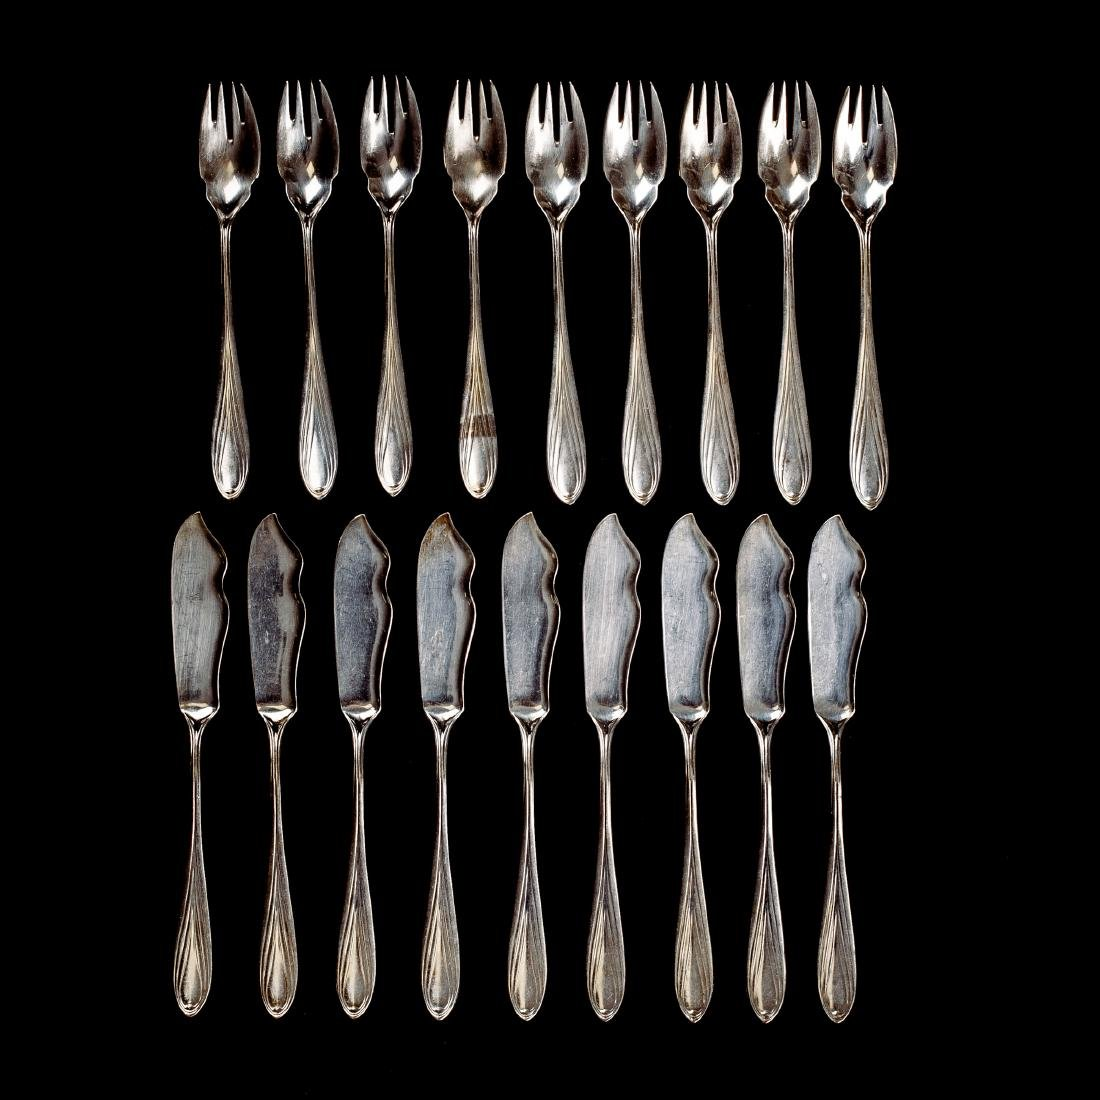 18 pieces of '3001' fish cutlery, 1901/02